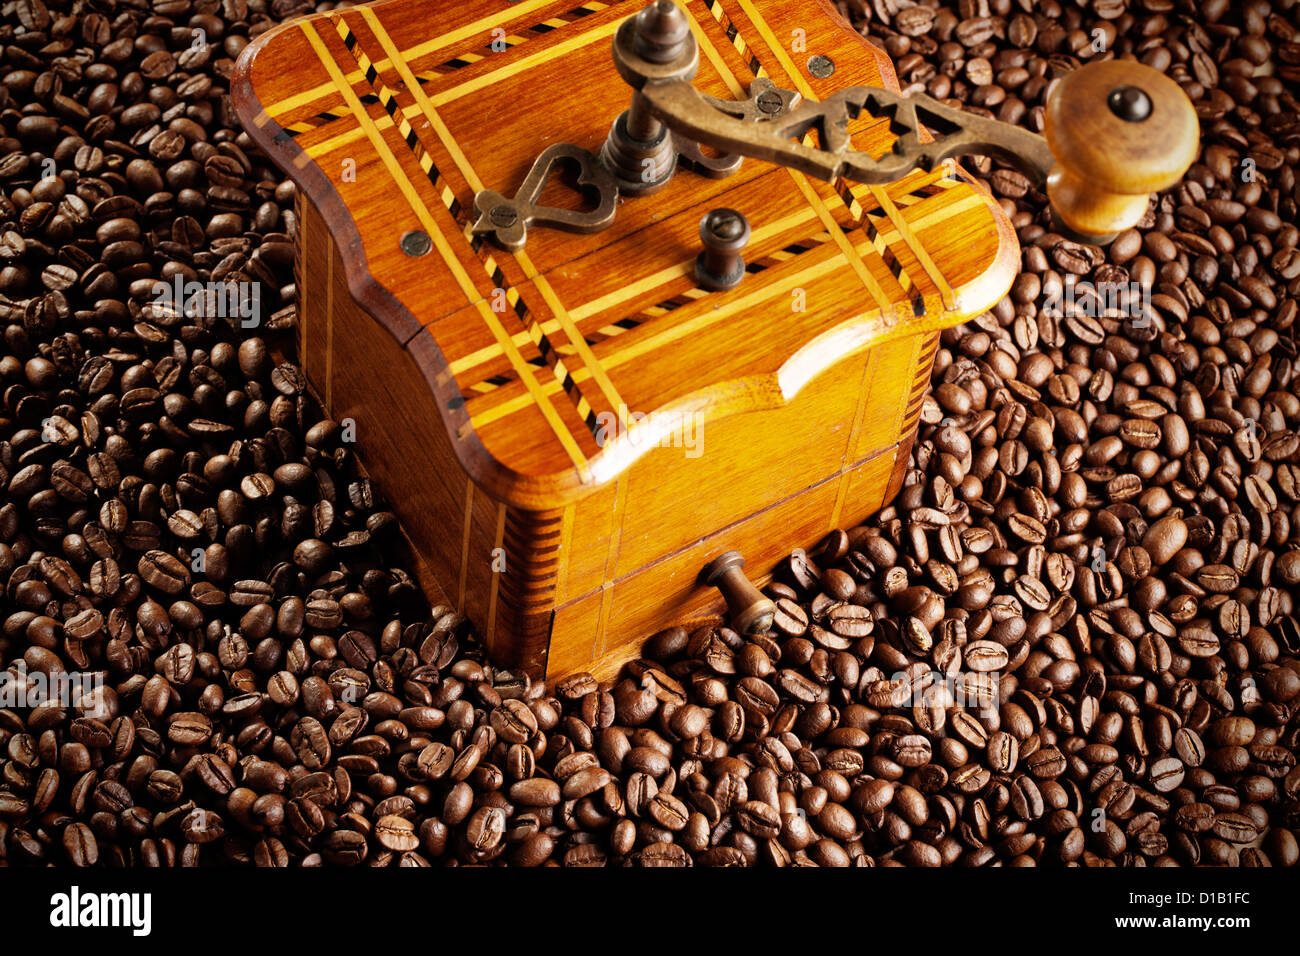 antique coffee mill with coffee beans - Stock Image